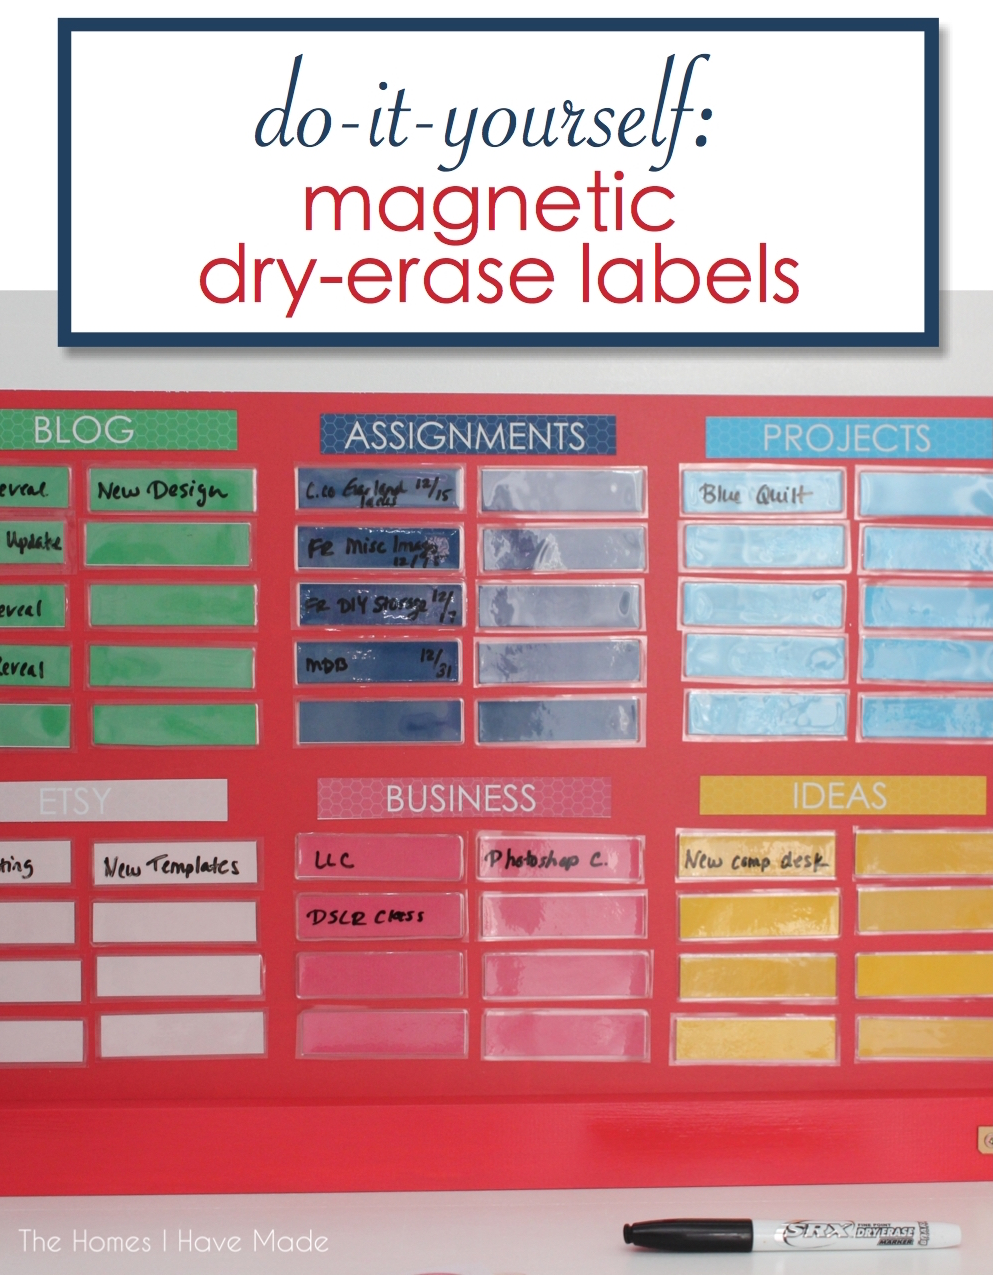 e8d66a45215 Magnetic Task Board - Part II  How to Make Magnetic Dry-Erase Labels ...